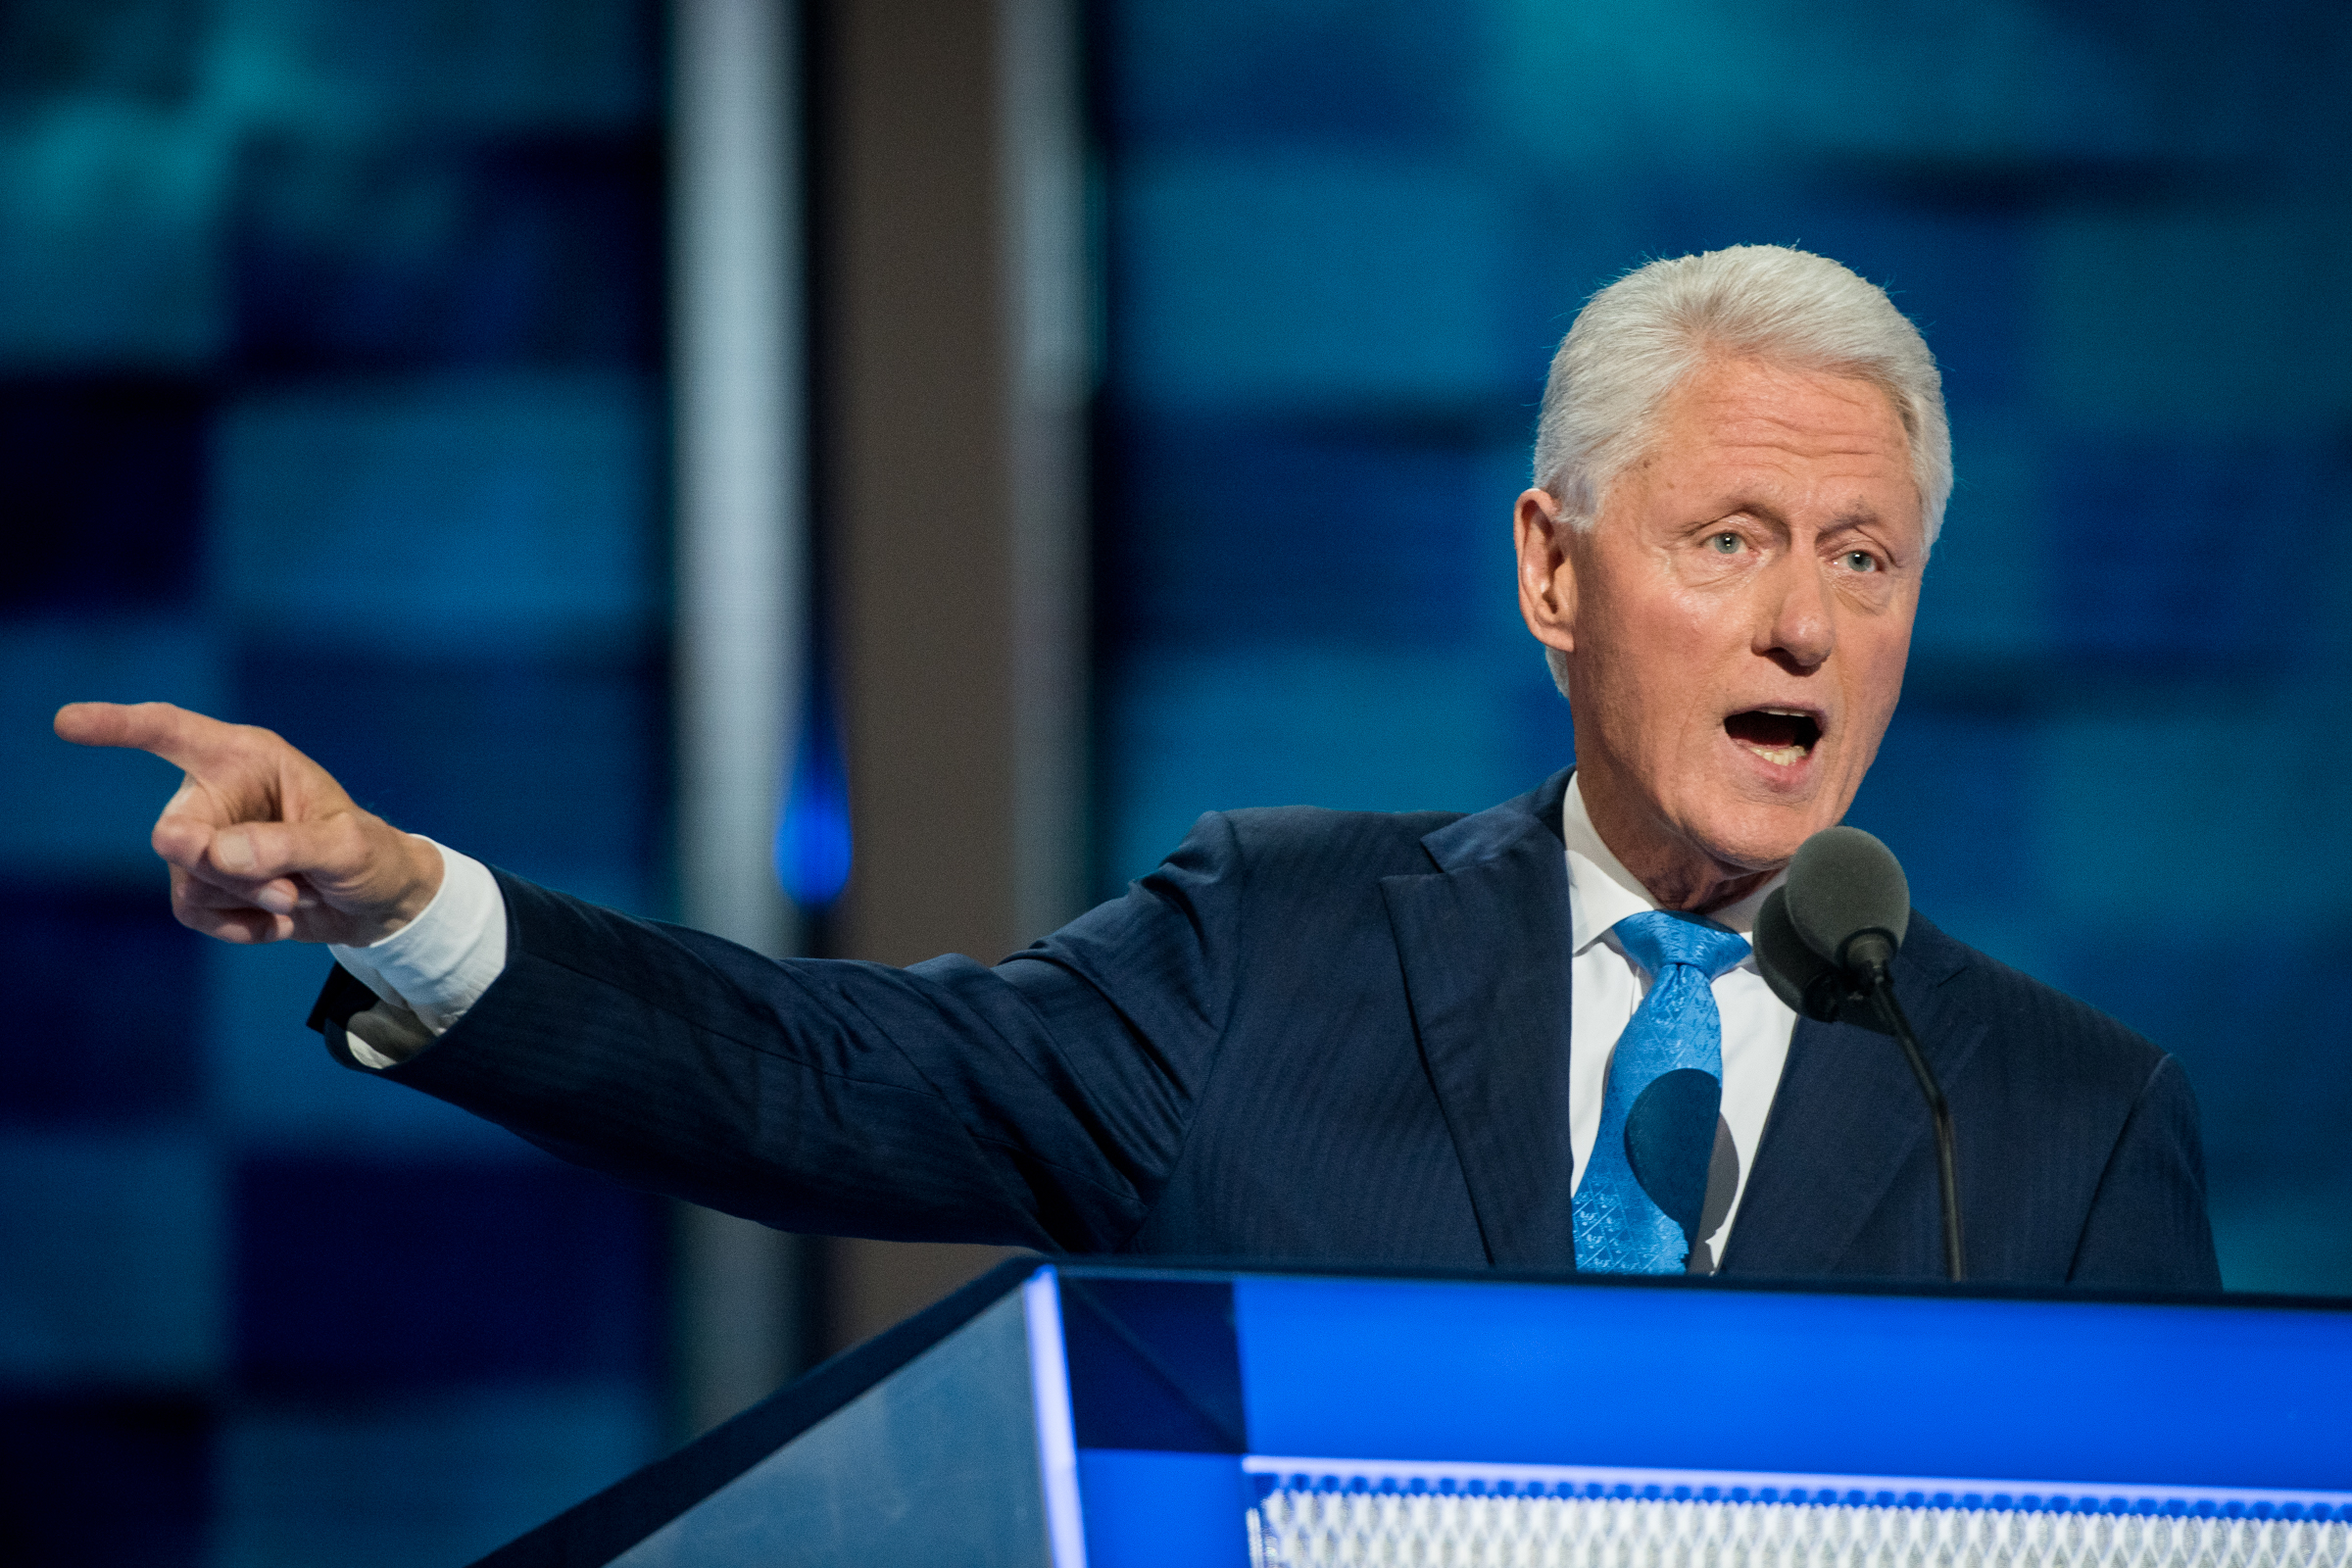 Former president Bill Clinton addresses the delegates at the Democratic National Convention inside the Wells Fargo Center in Philadelphia on Tuesday July 26, 2016. (Michael Ares /Philadelphia Inquirer)